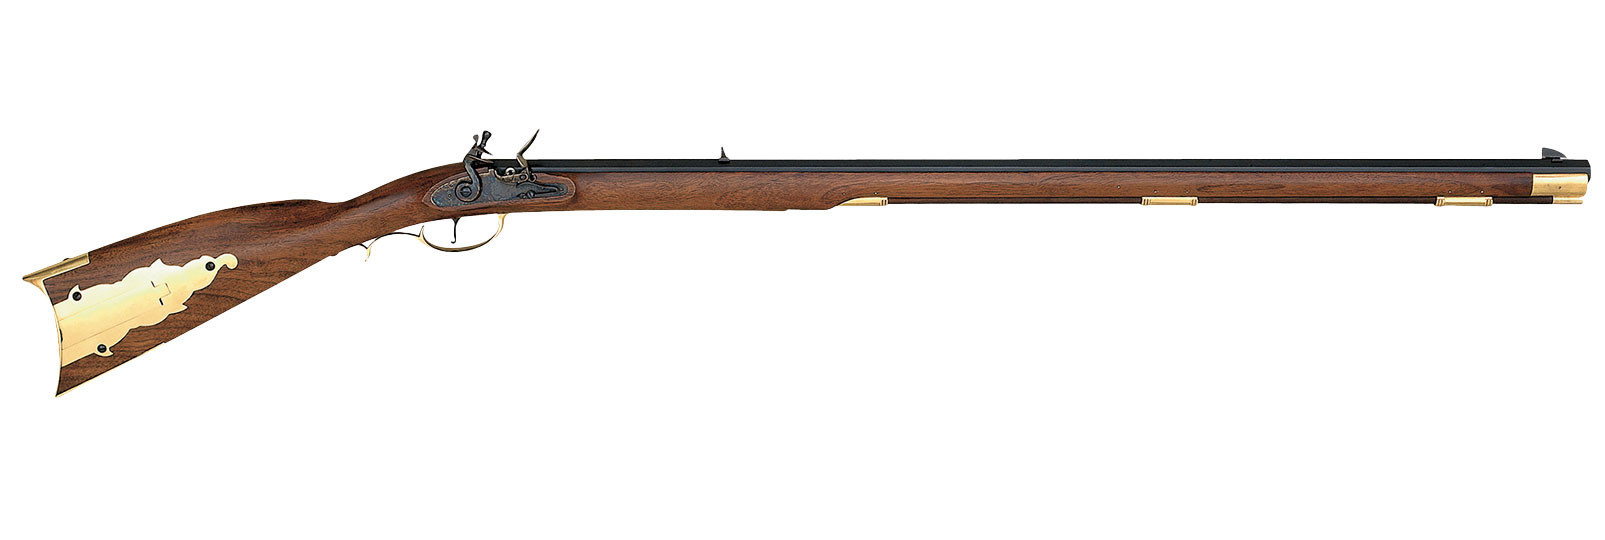 Kentucky flint rifle .50 smooth